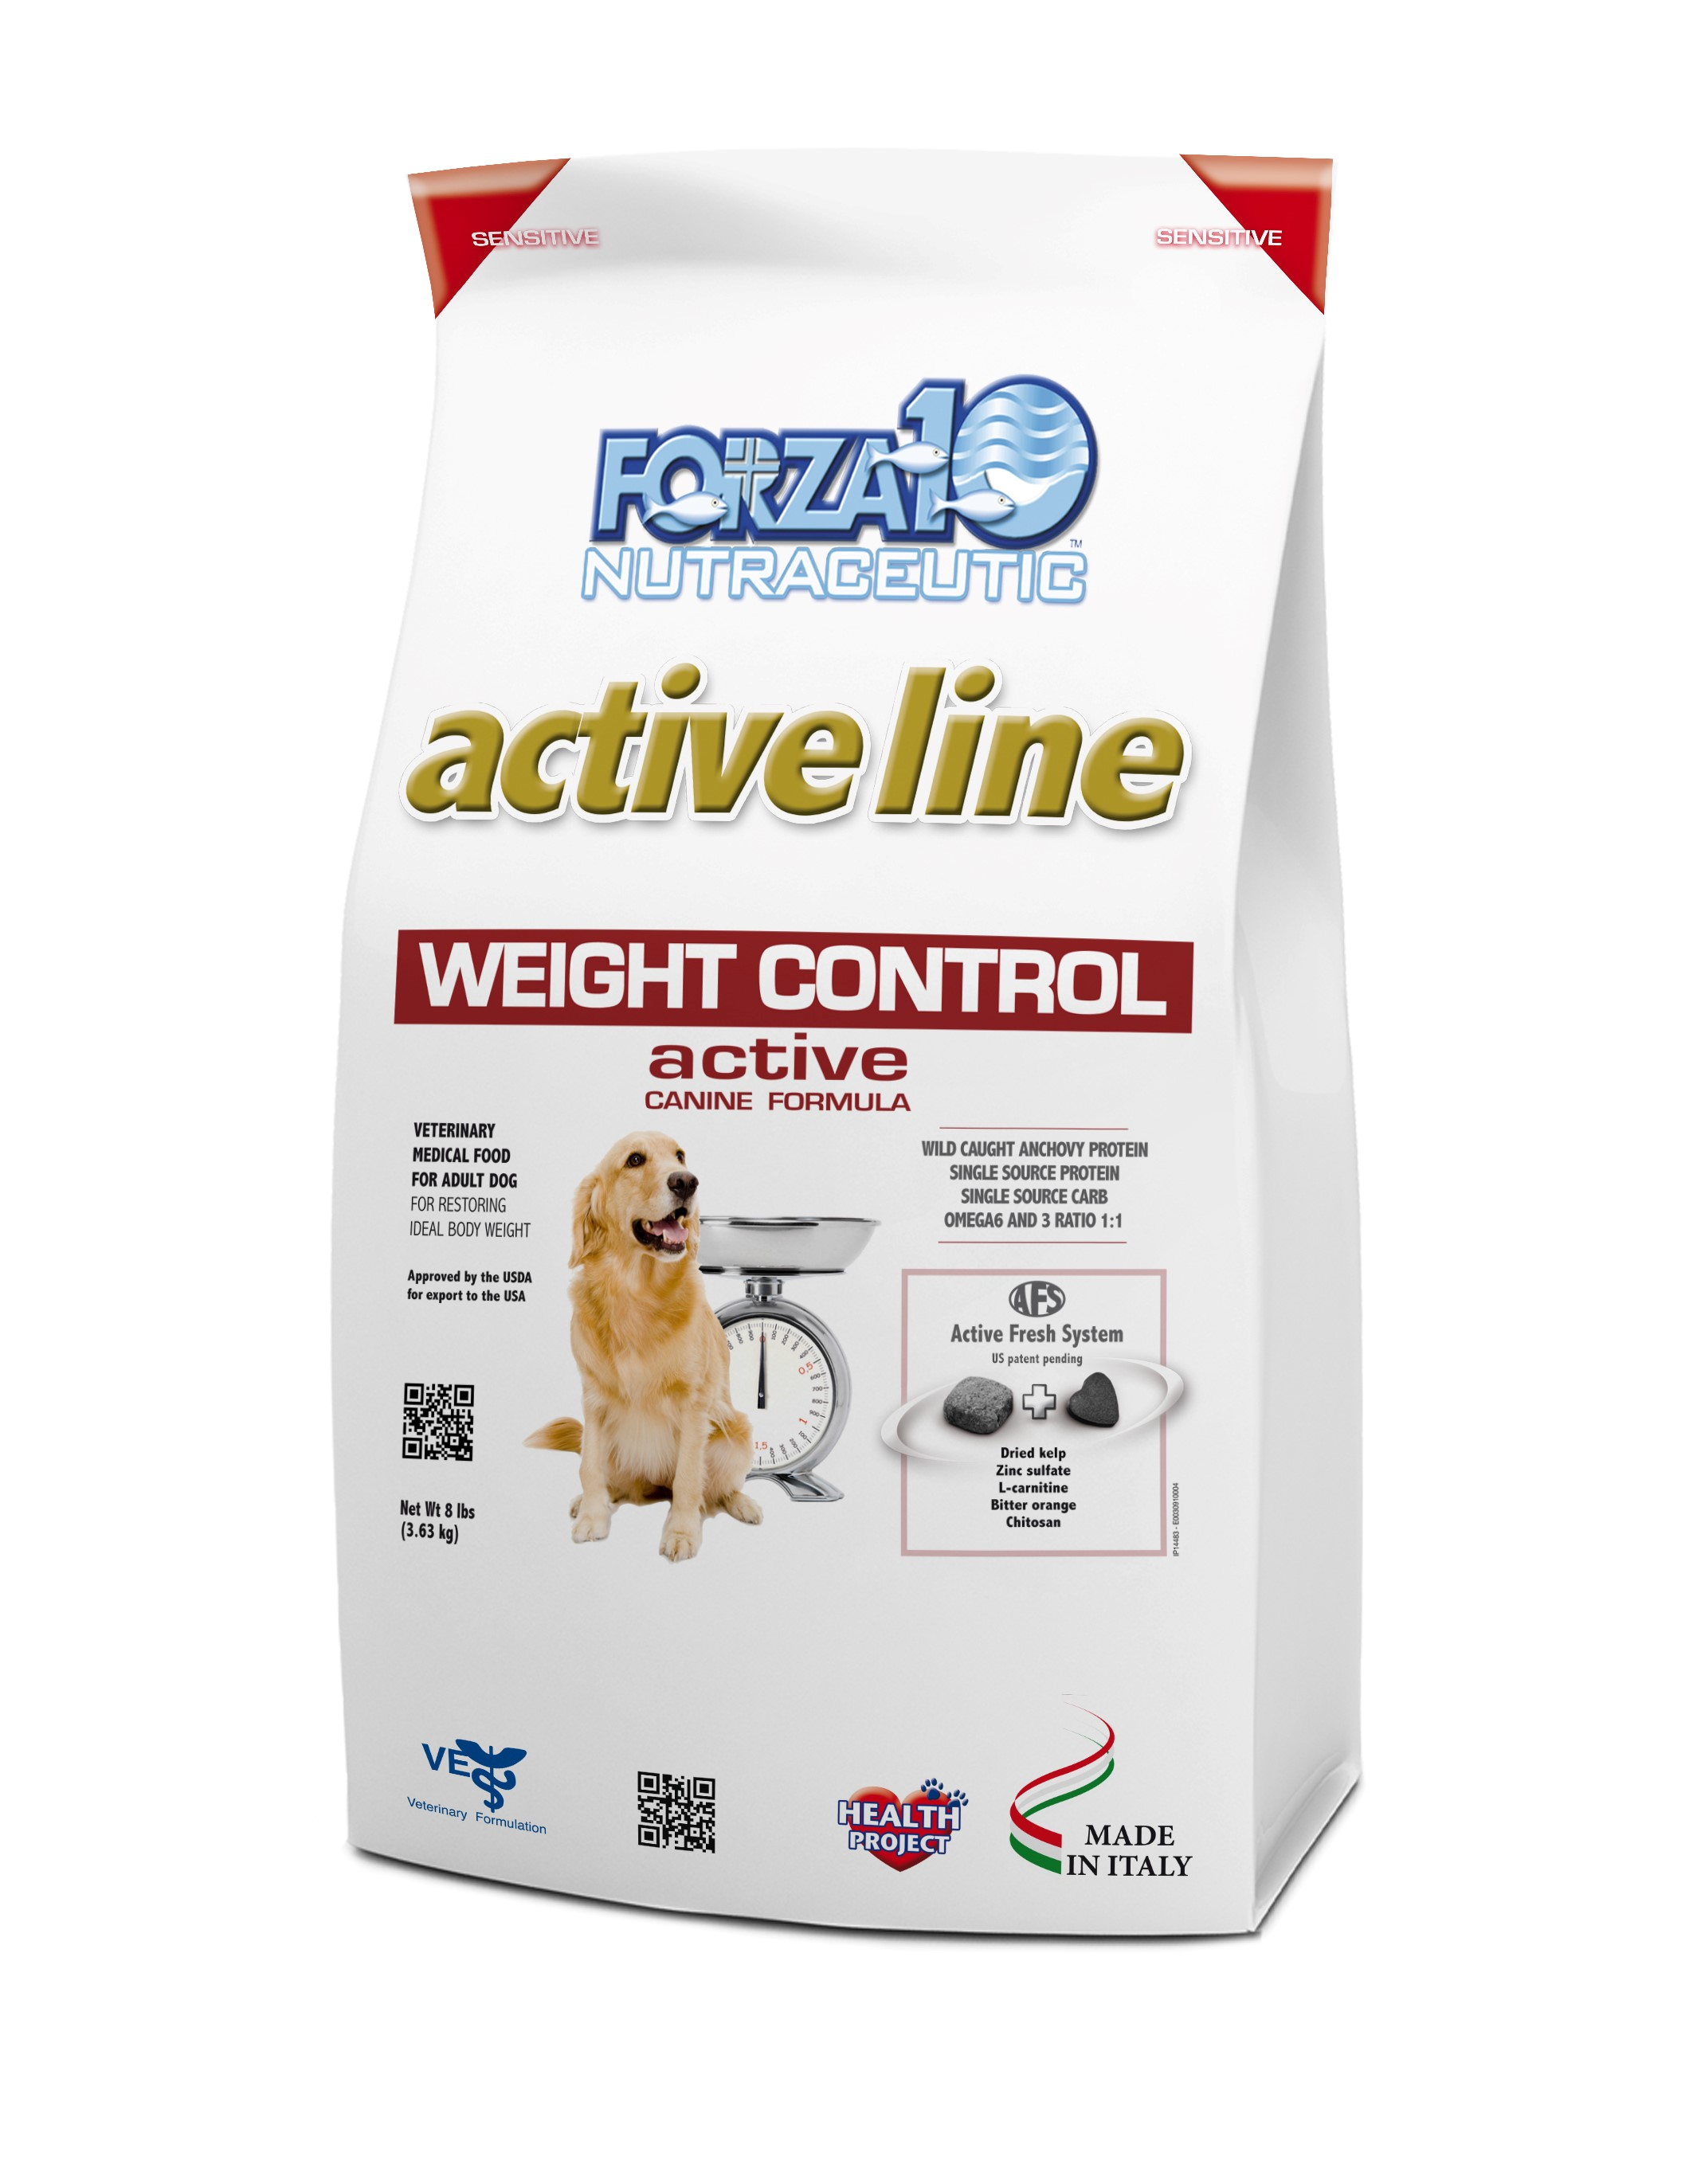 Forza10 Active Line Weight Control Active Line Dry Dog Food, 8-lb